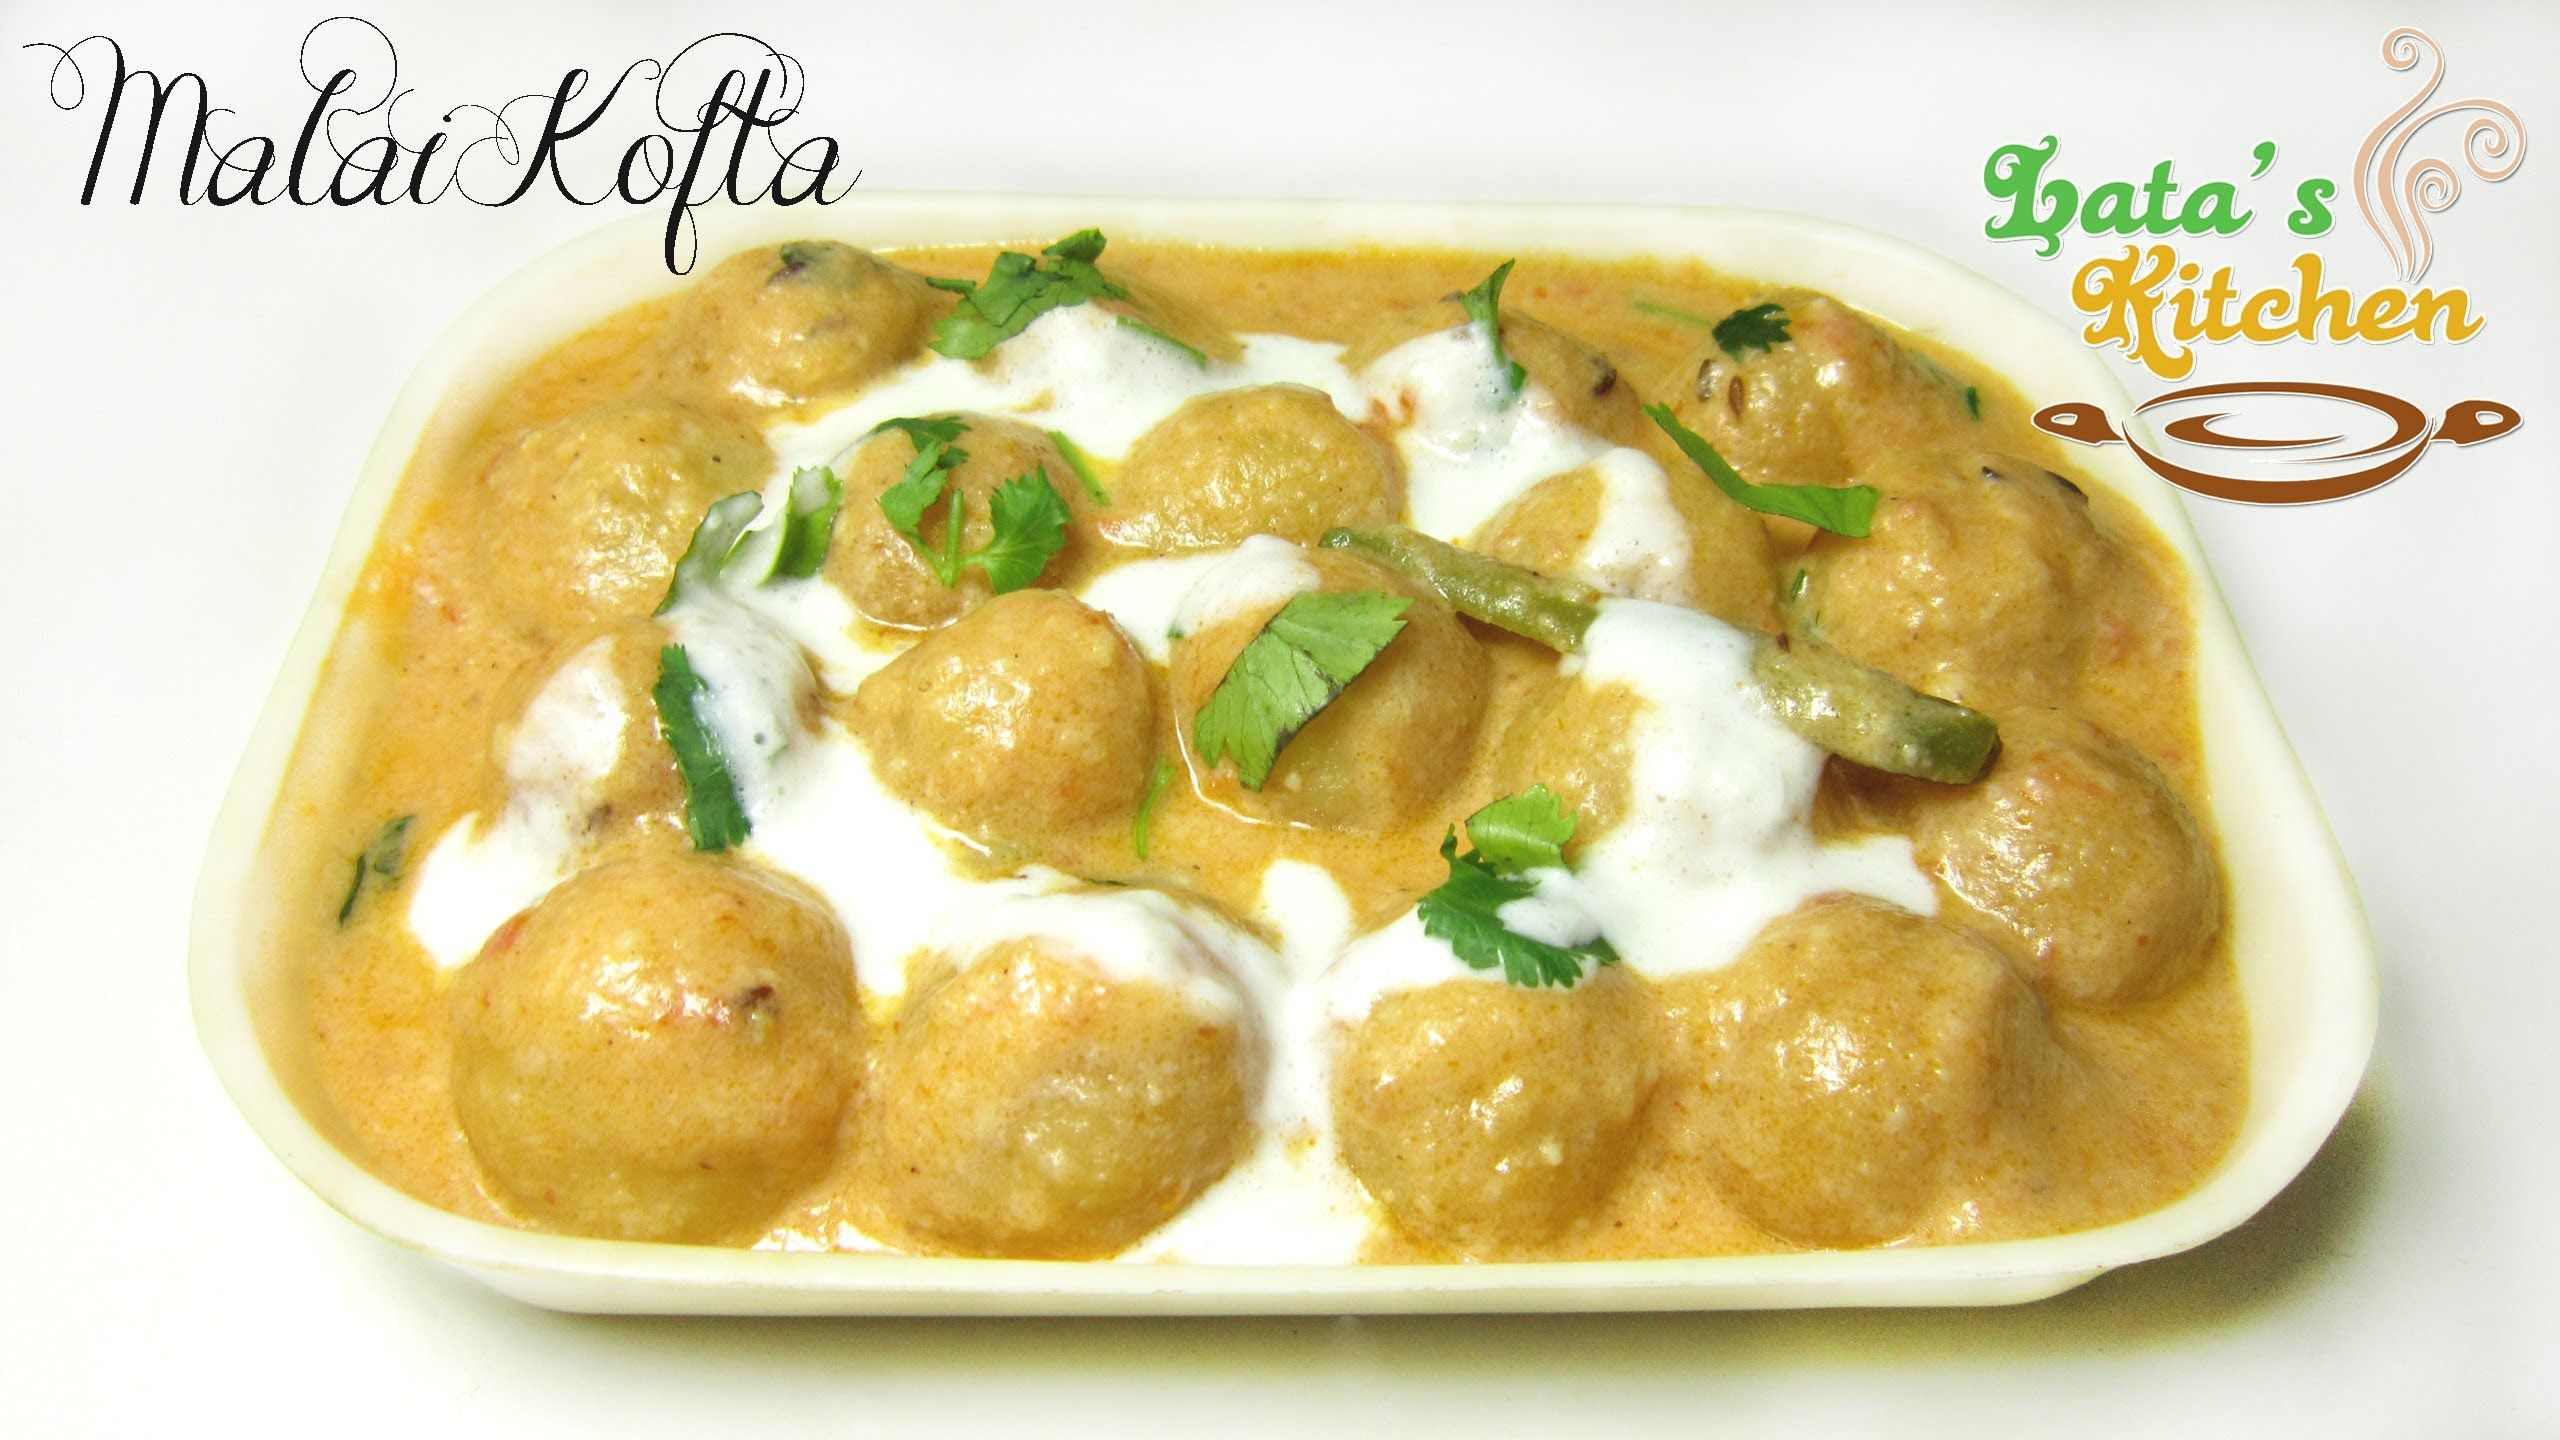 Malai kofta indian foods pinterest indian vegetarian recipes food malai kofta vegetarian recipes forumfinder Choice Image